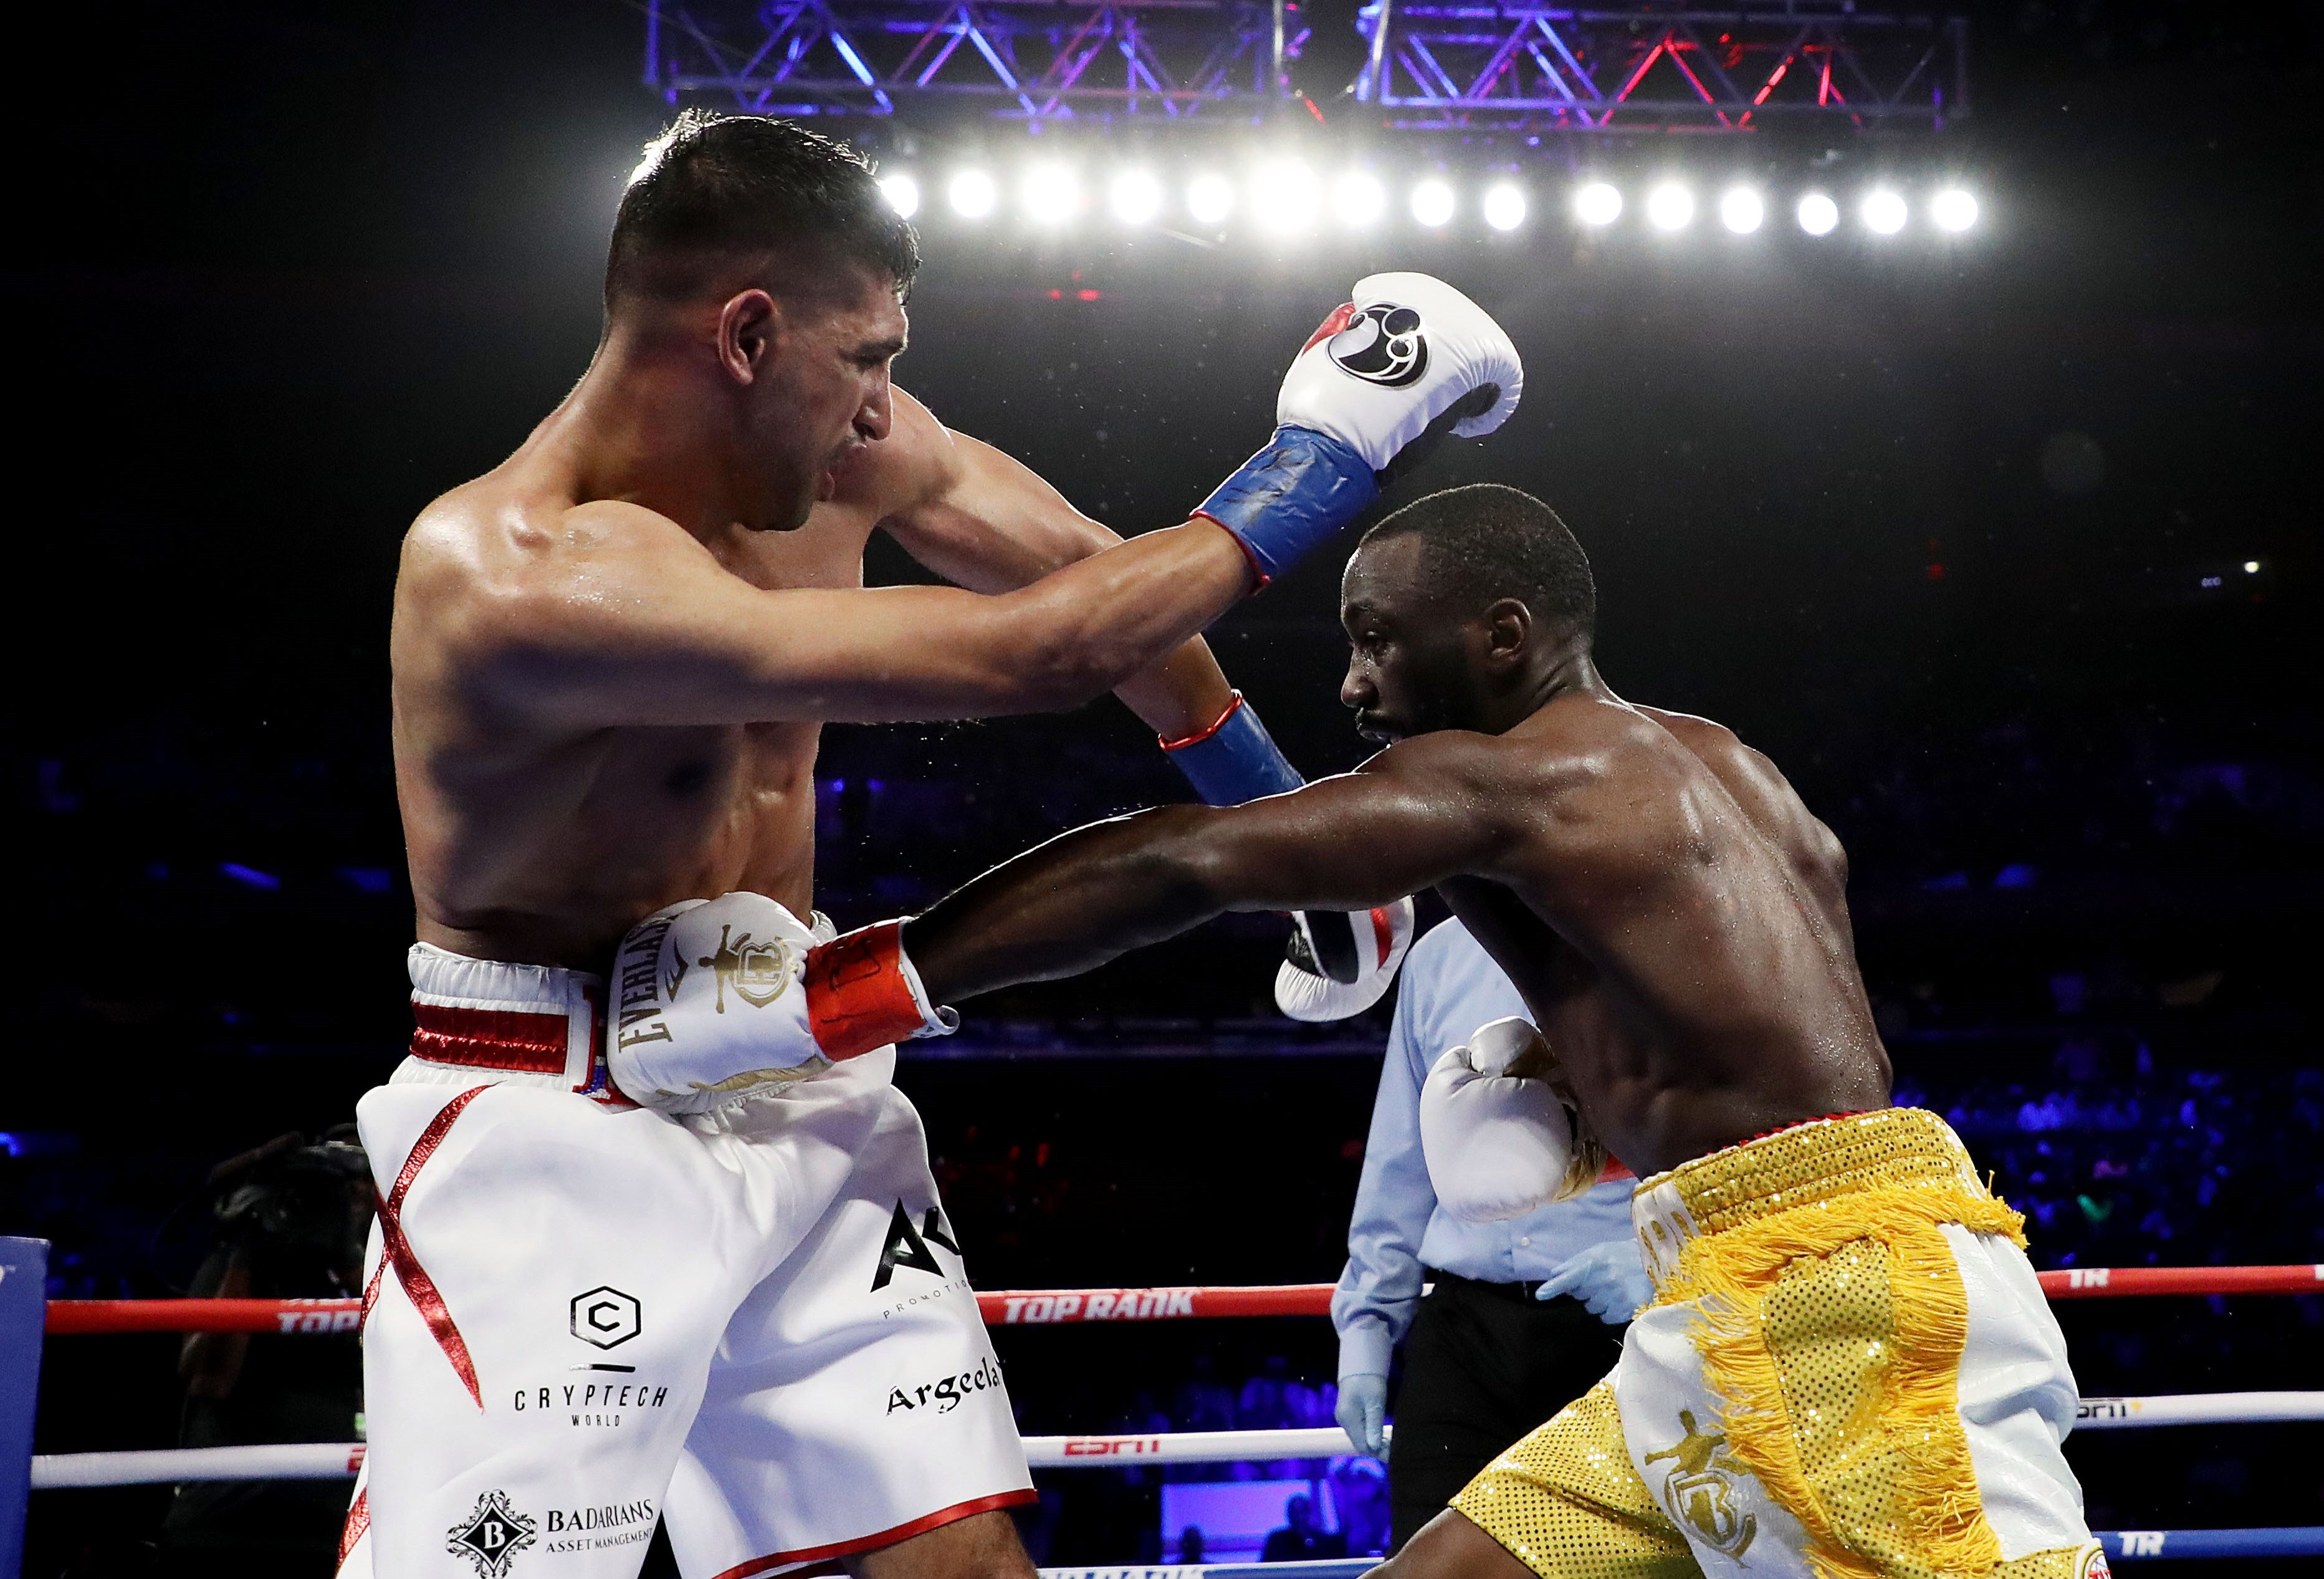 Crawford landed an accidental low blow on Khan and the Bolton boxer was pulled out by his trainer Virgil Hunter